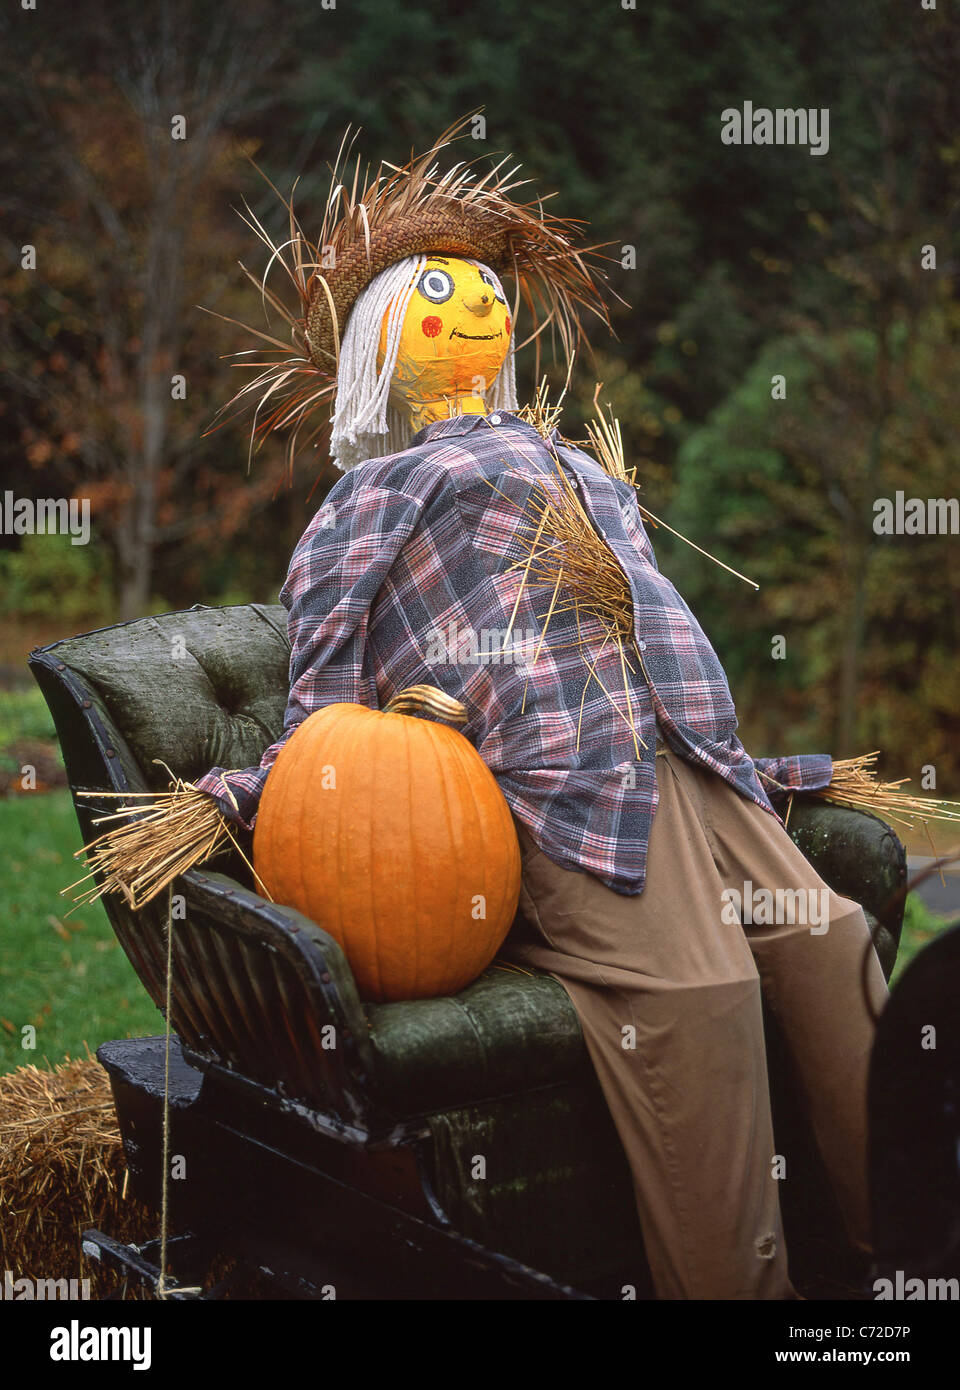 Roadside carriage with pumpkin and scarecrow, Connecticut, United States of America - Stock Image